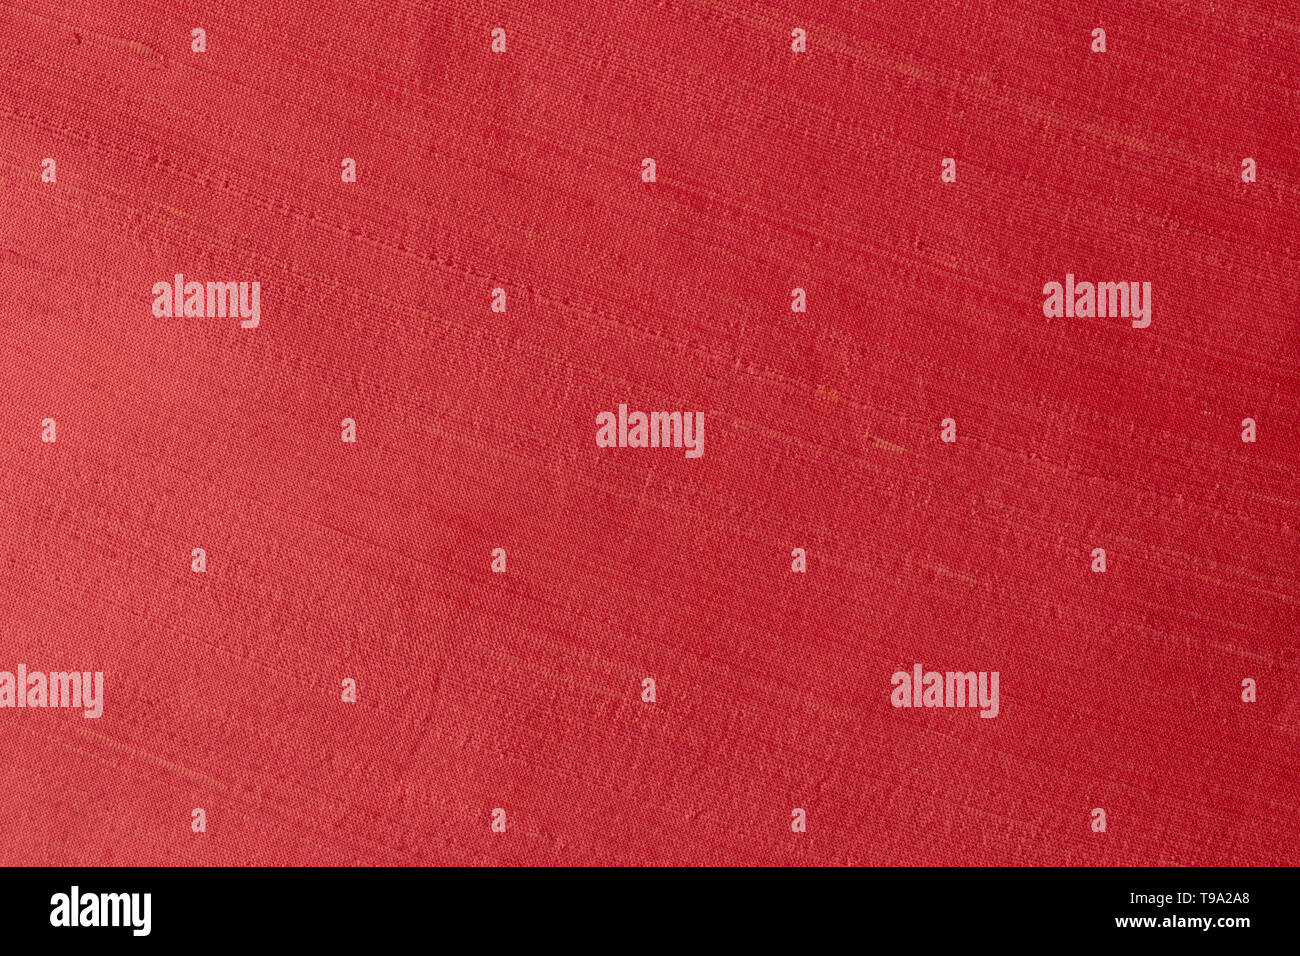 Close up of a woolen fabric of red violet color. Abstract canvas background, empty template. - Stock Image